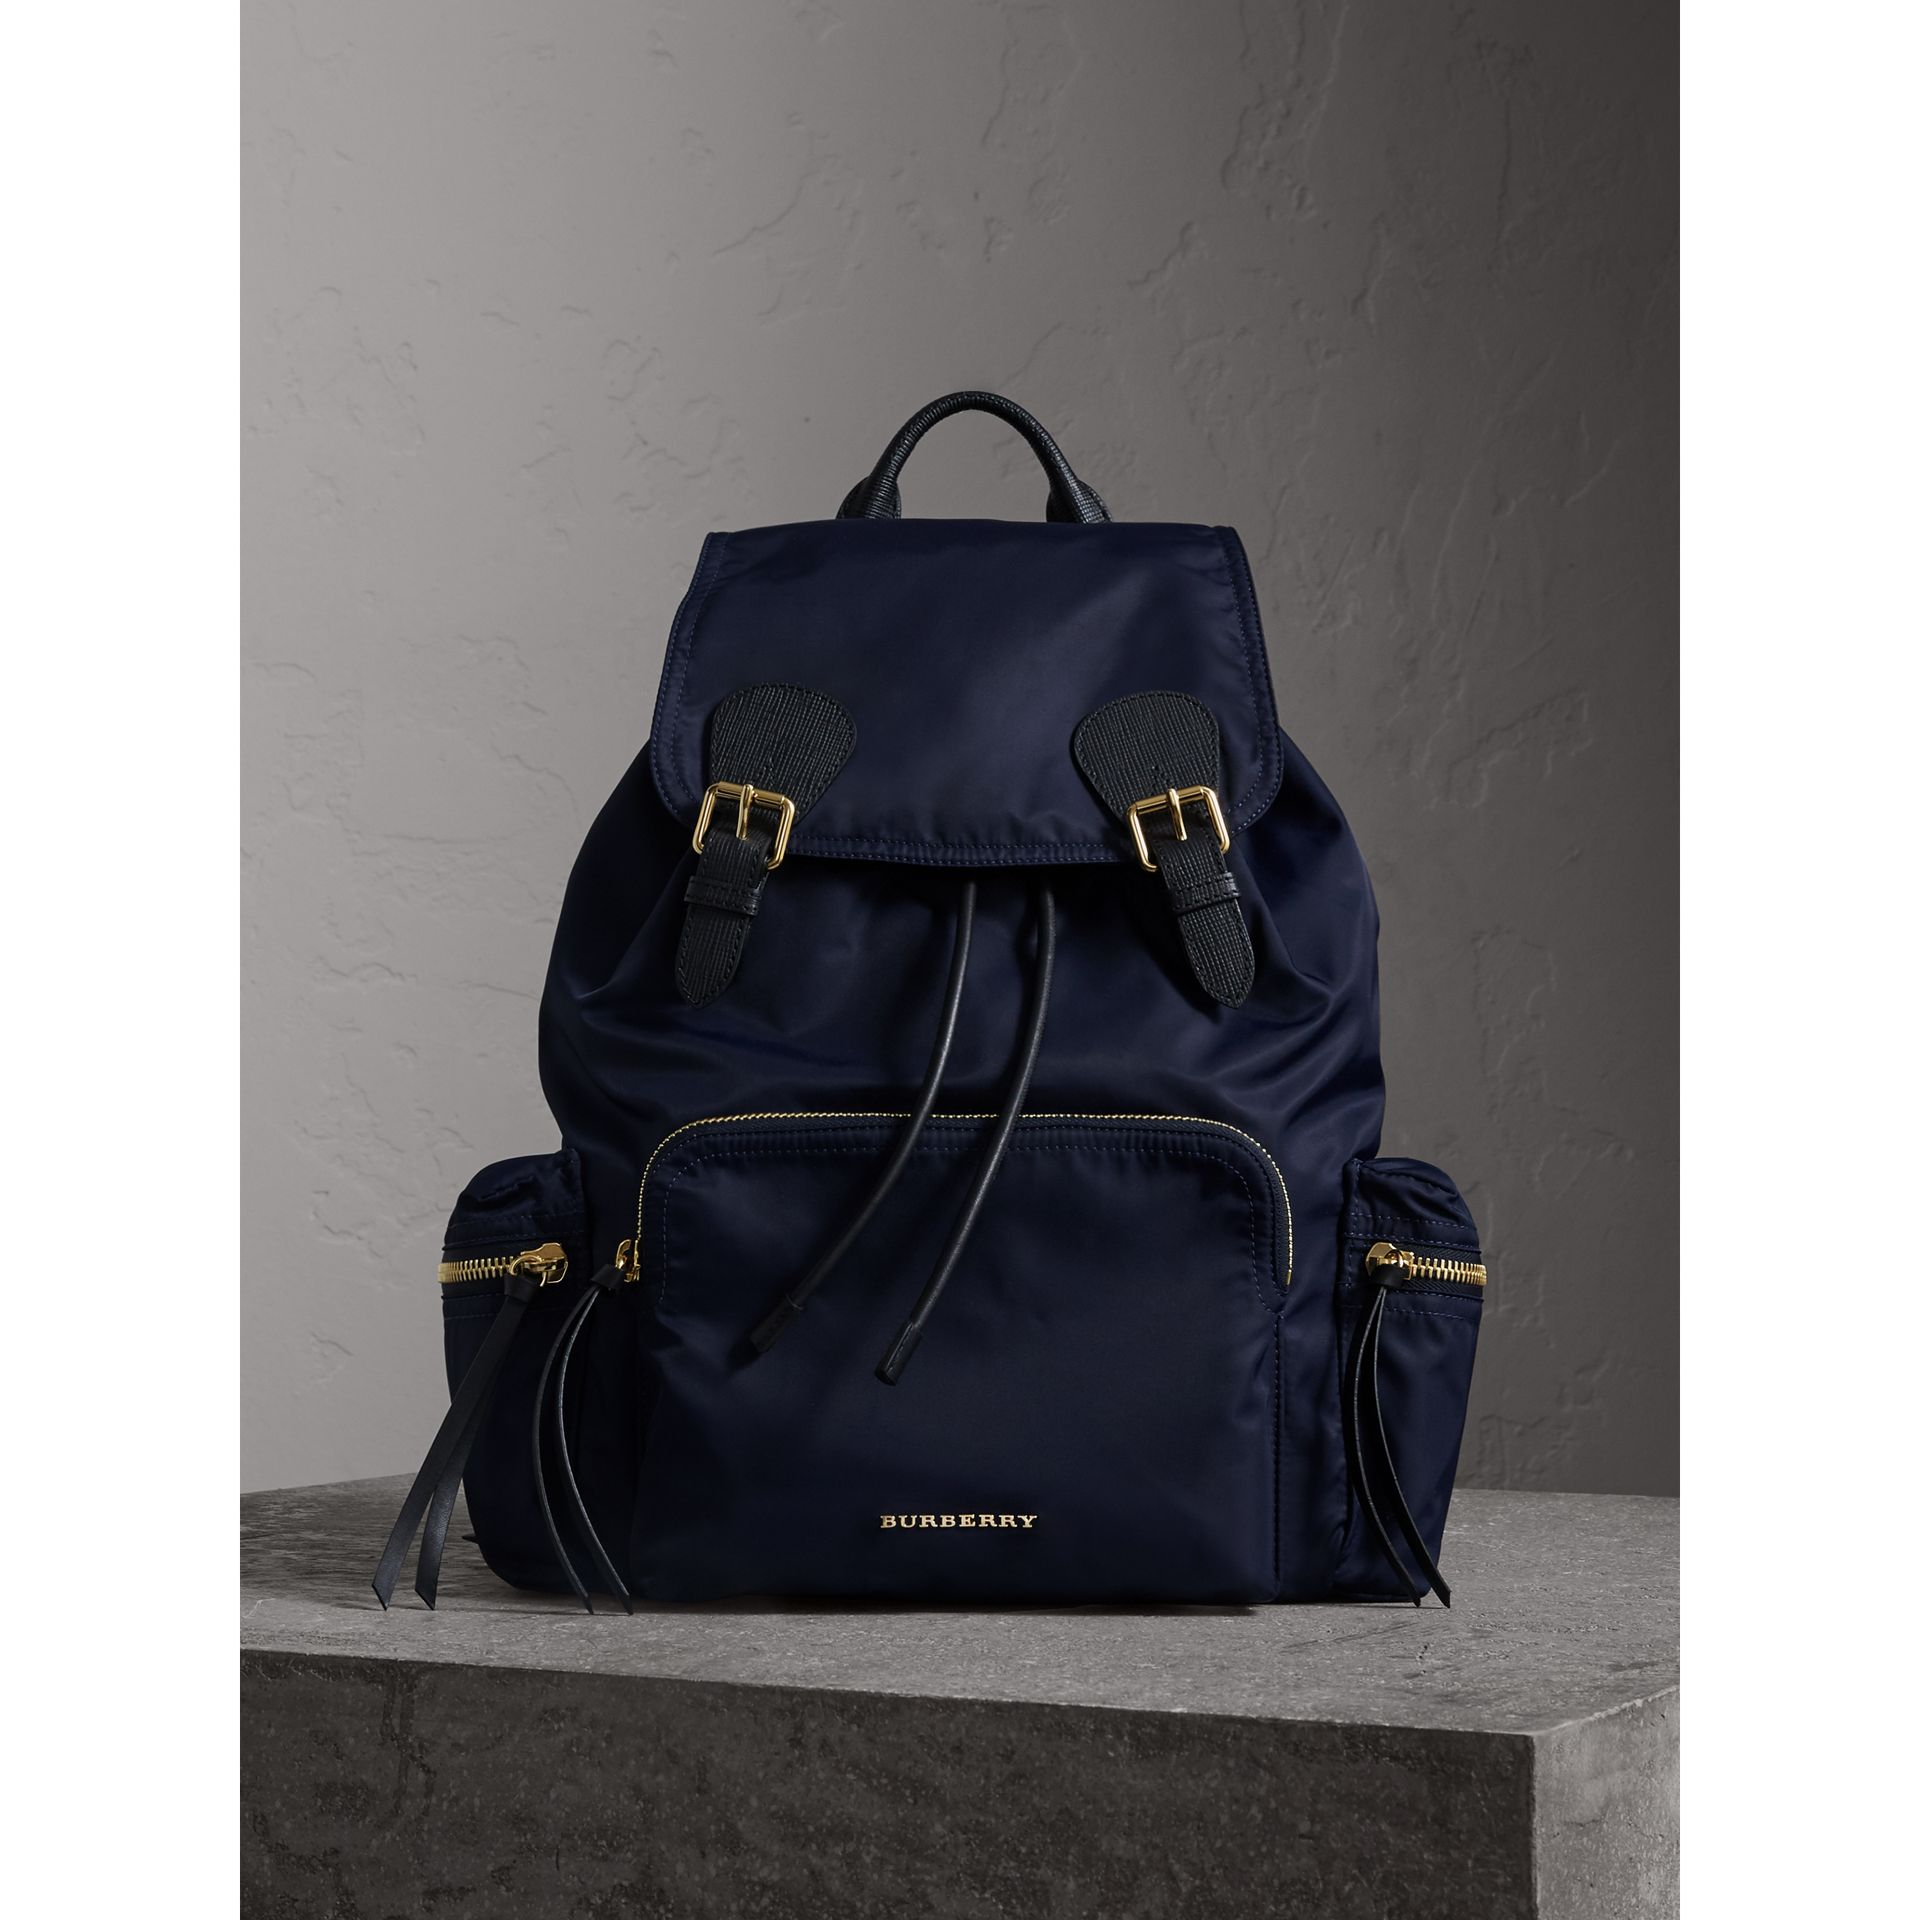 9c686701c259 Burberry Nylon And Leather Backpack- Fenix Toulouse Handball